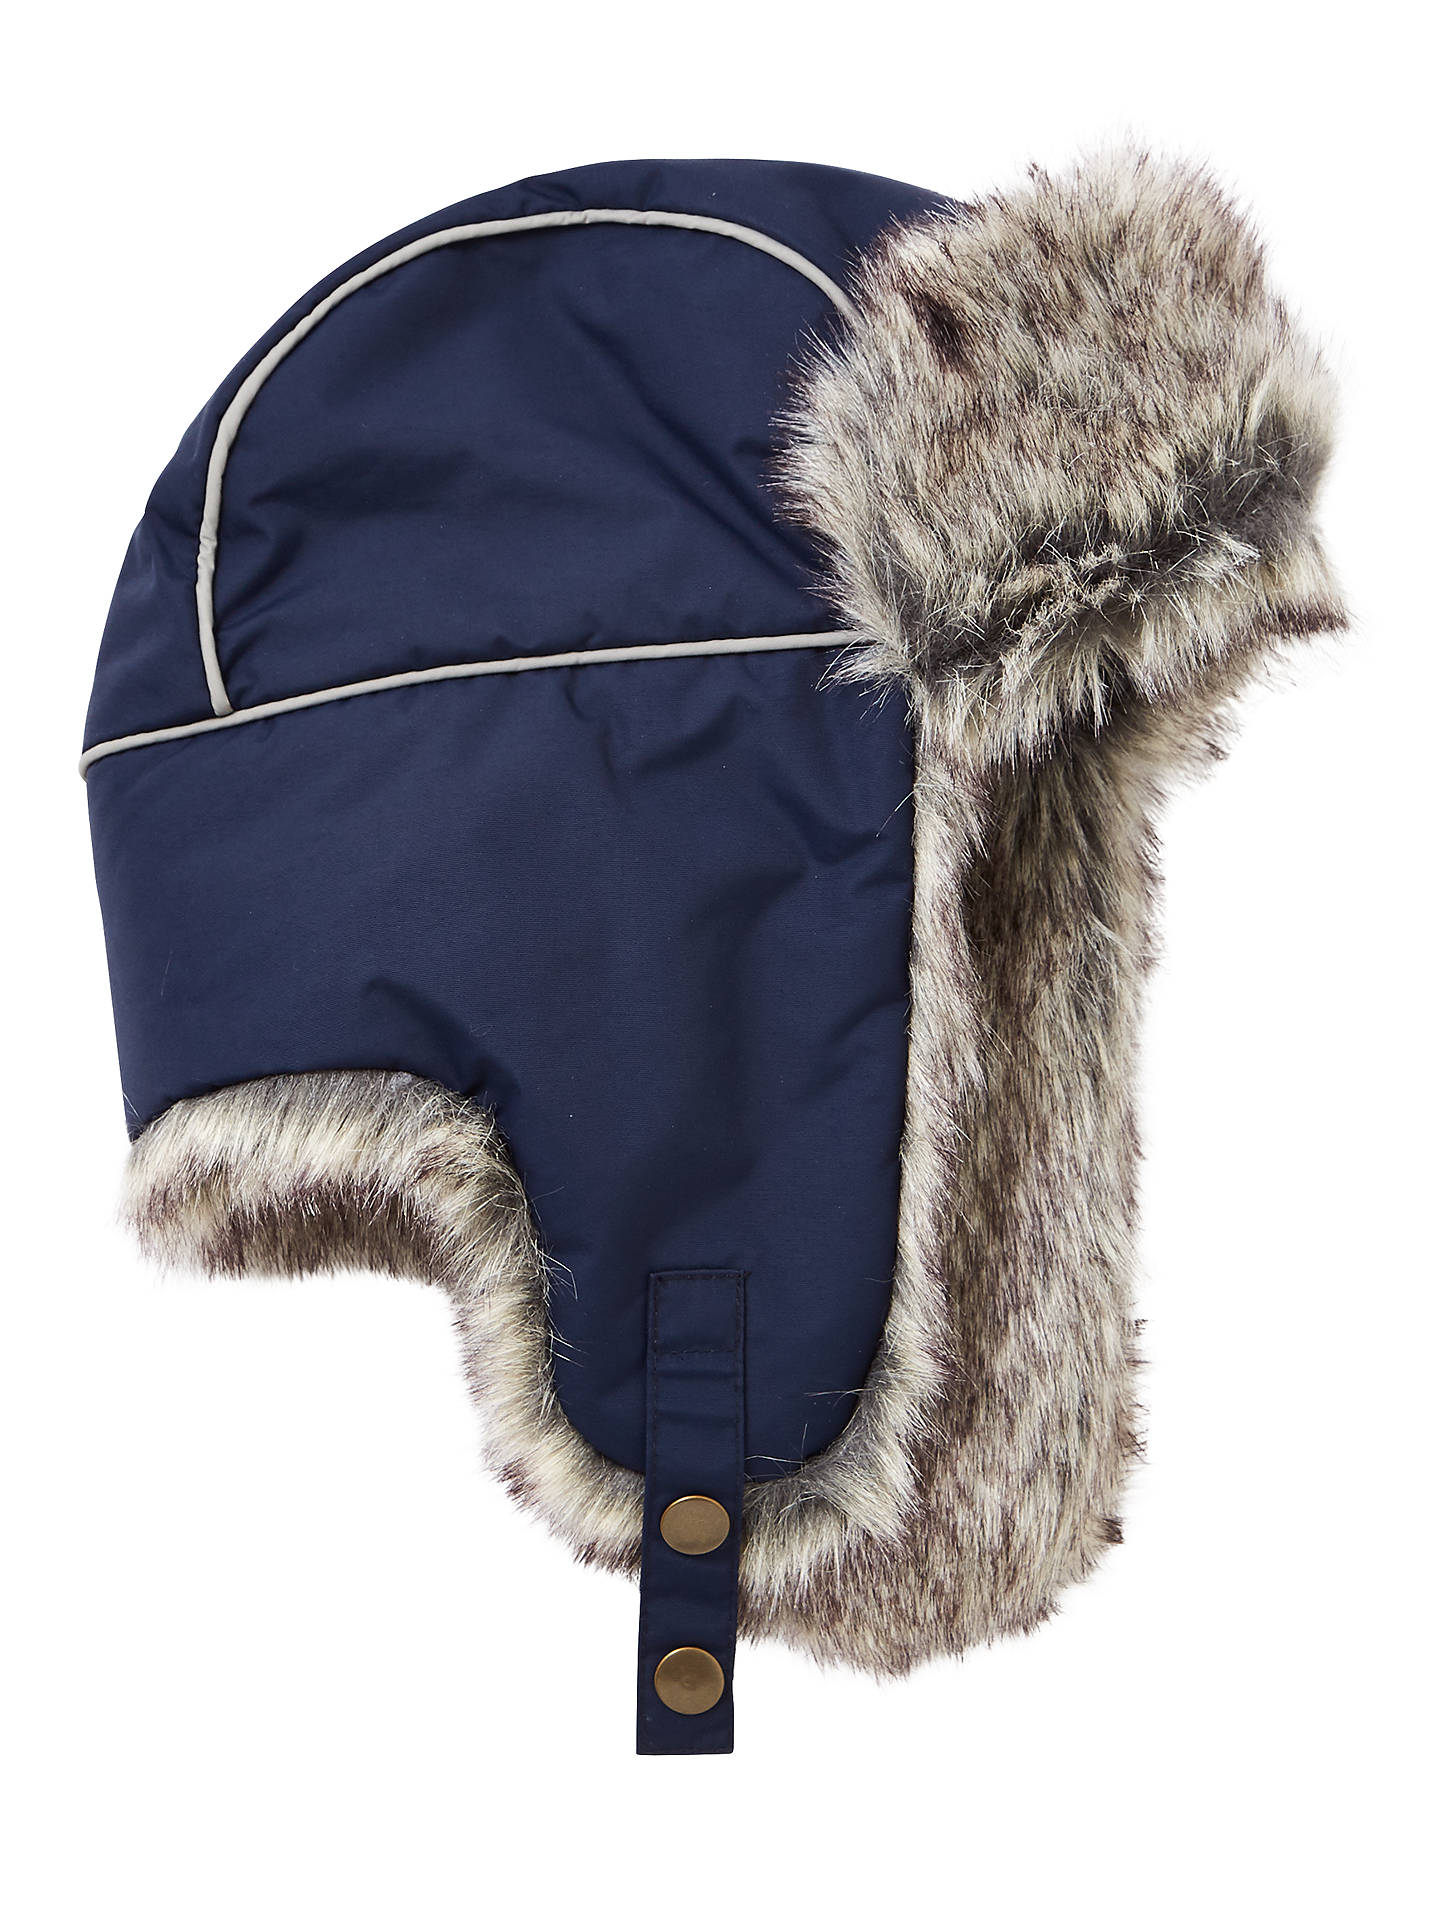 4e7737ddc8b3e John Lewis Children s Ski Trapper Hat at John Lewis   Partners